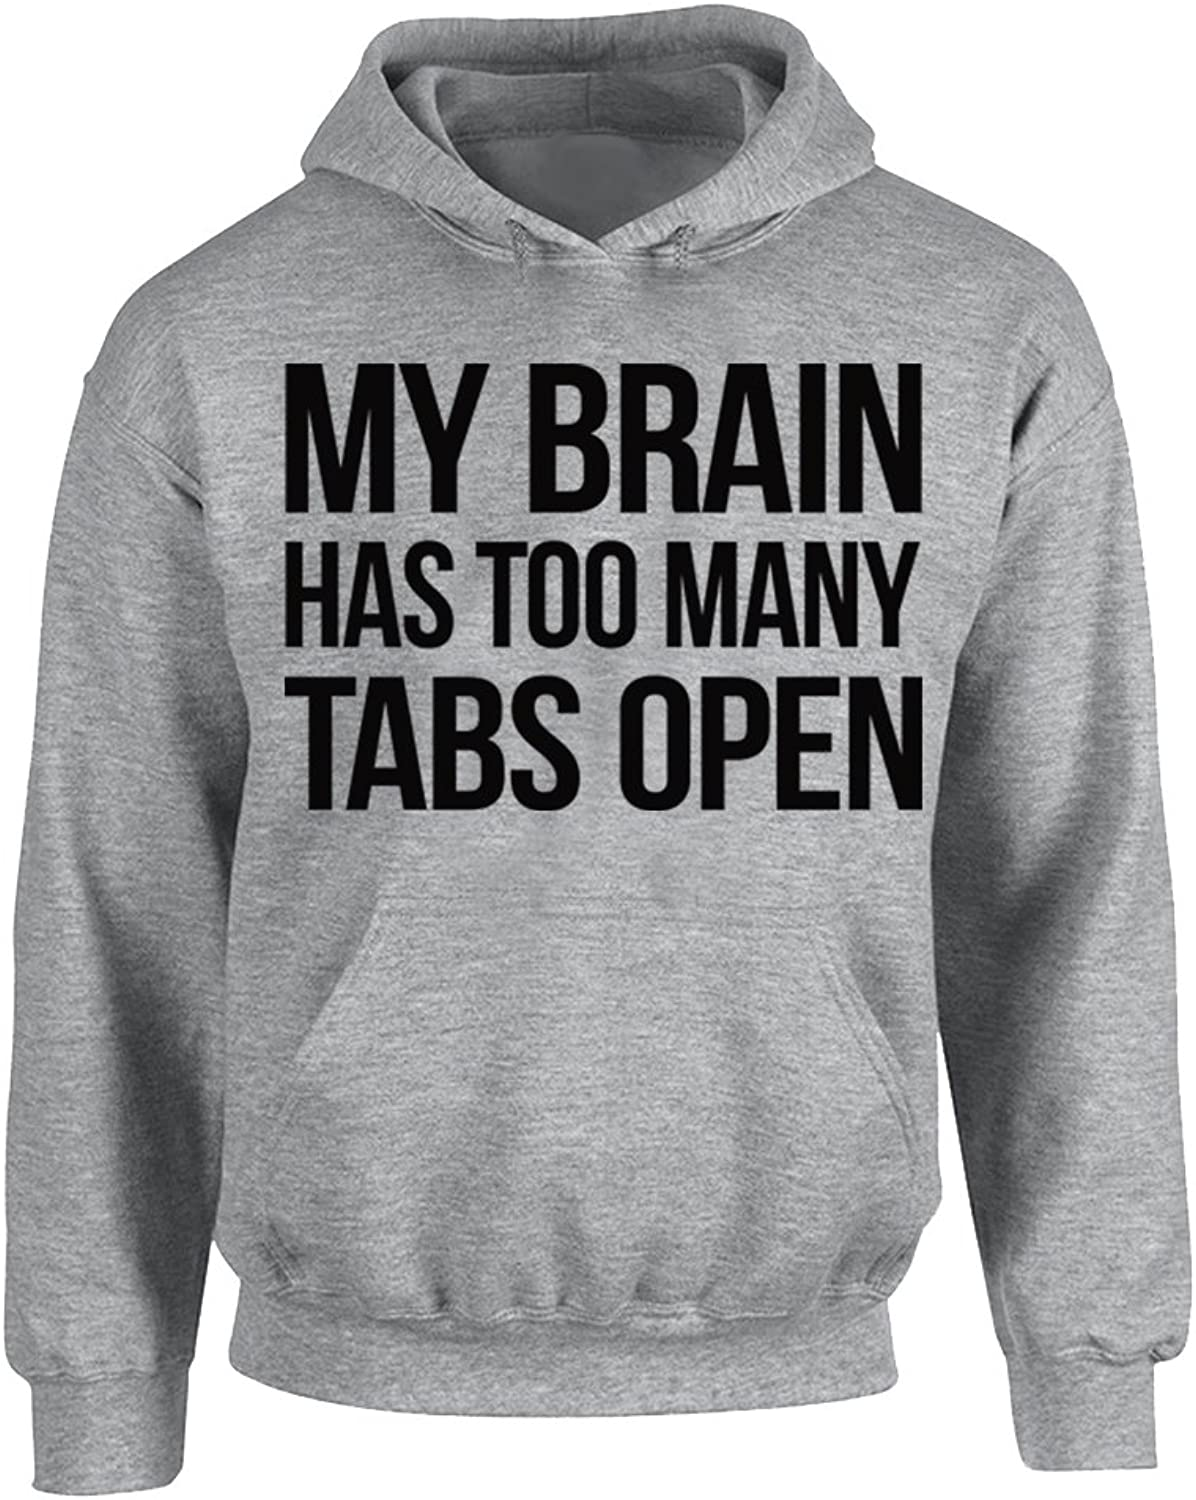 CAMALEN My Brain Has Too Many Tabs Open Unisex Pullover Hoodie Hooded Sweatshirt